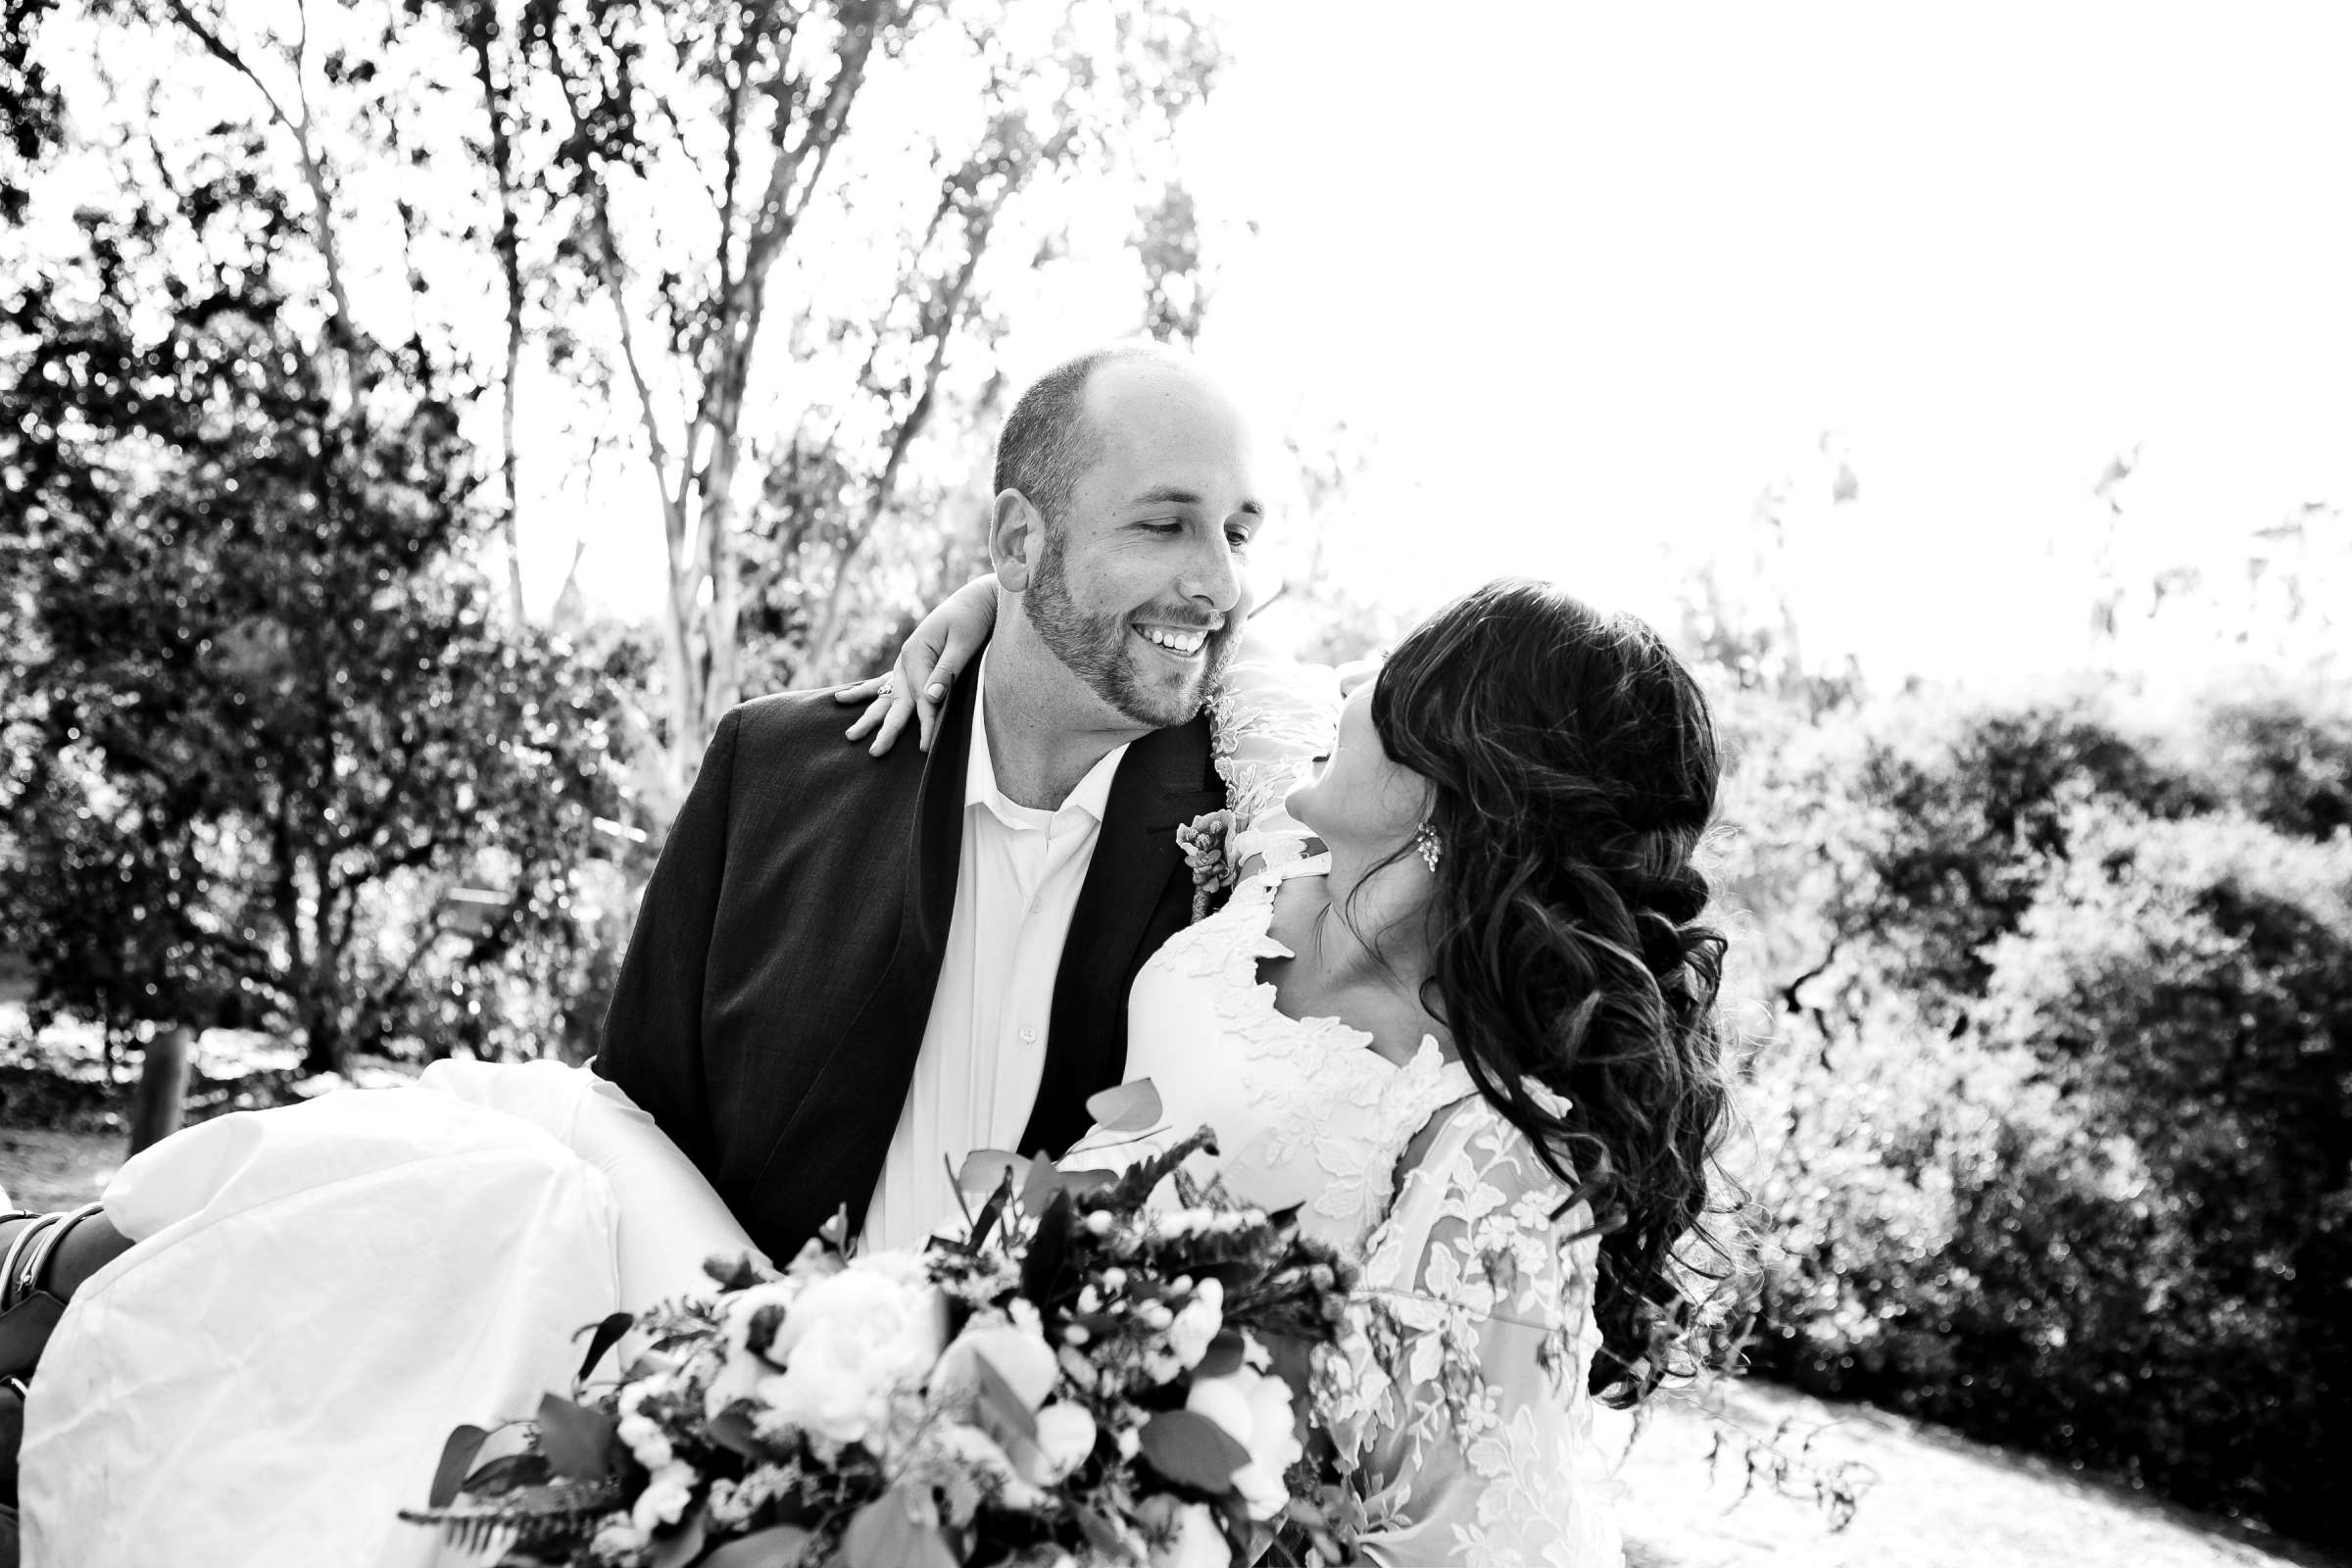 Leo Carrillo Ranch Wedding coordinated by Weddings by Lisa Nicole, Bethany and Aaron Wedding Photo #1 by True Photography